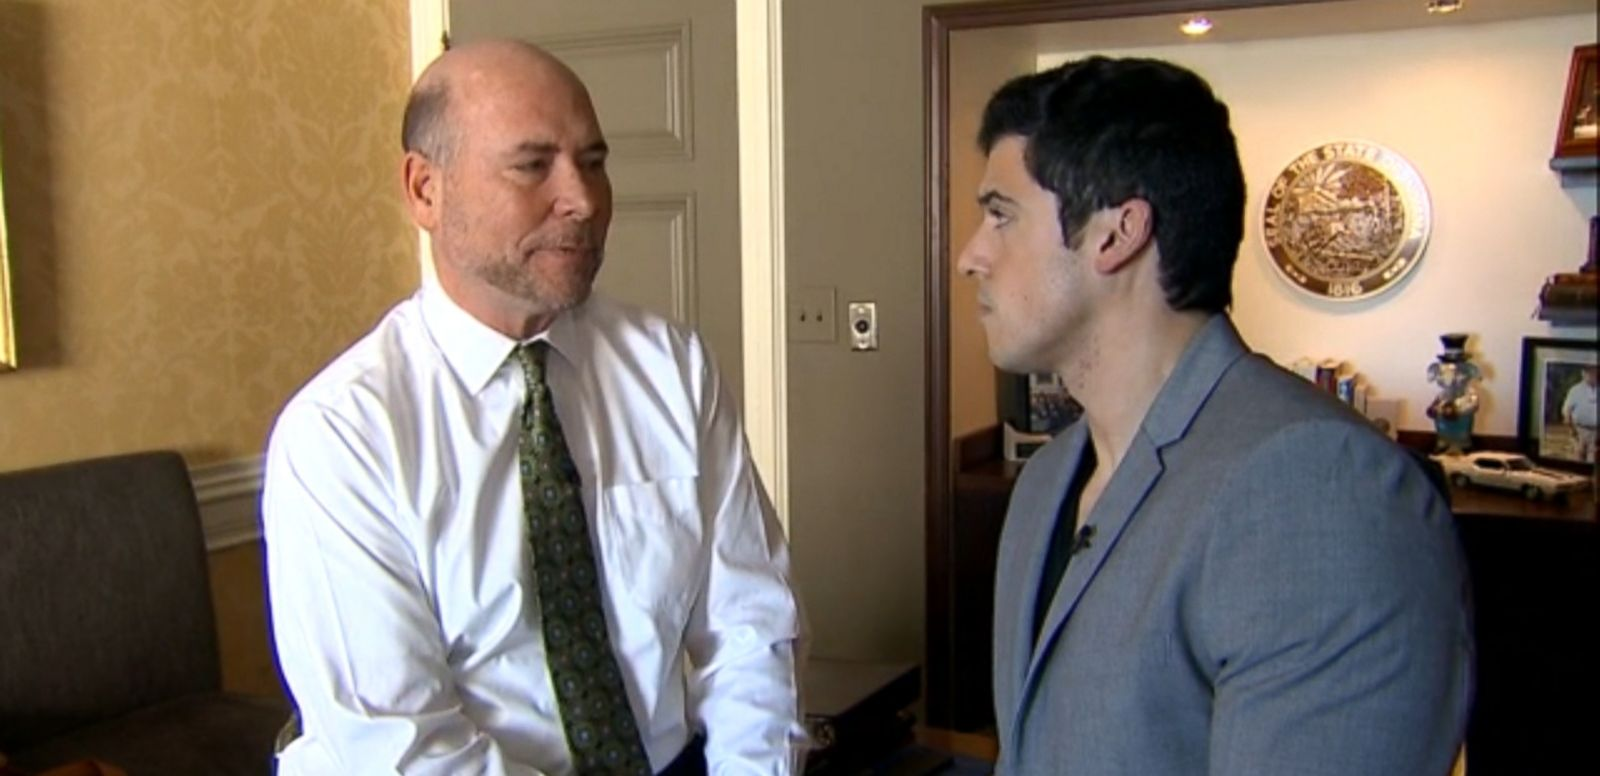 """VIDEO: House Speaker Brian Bosma says the governor failed to address questions about his state's """"religious freedom"""" law in an interview with ABC News' George Stephanopoulos on """"This Week."""""""